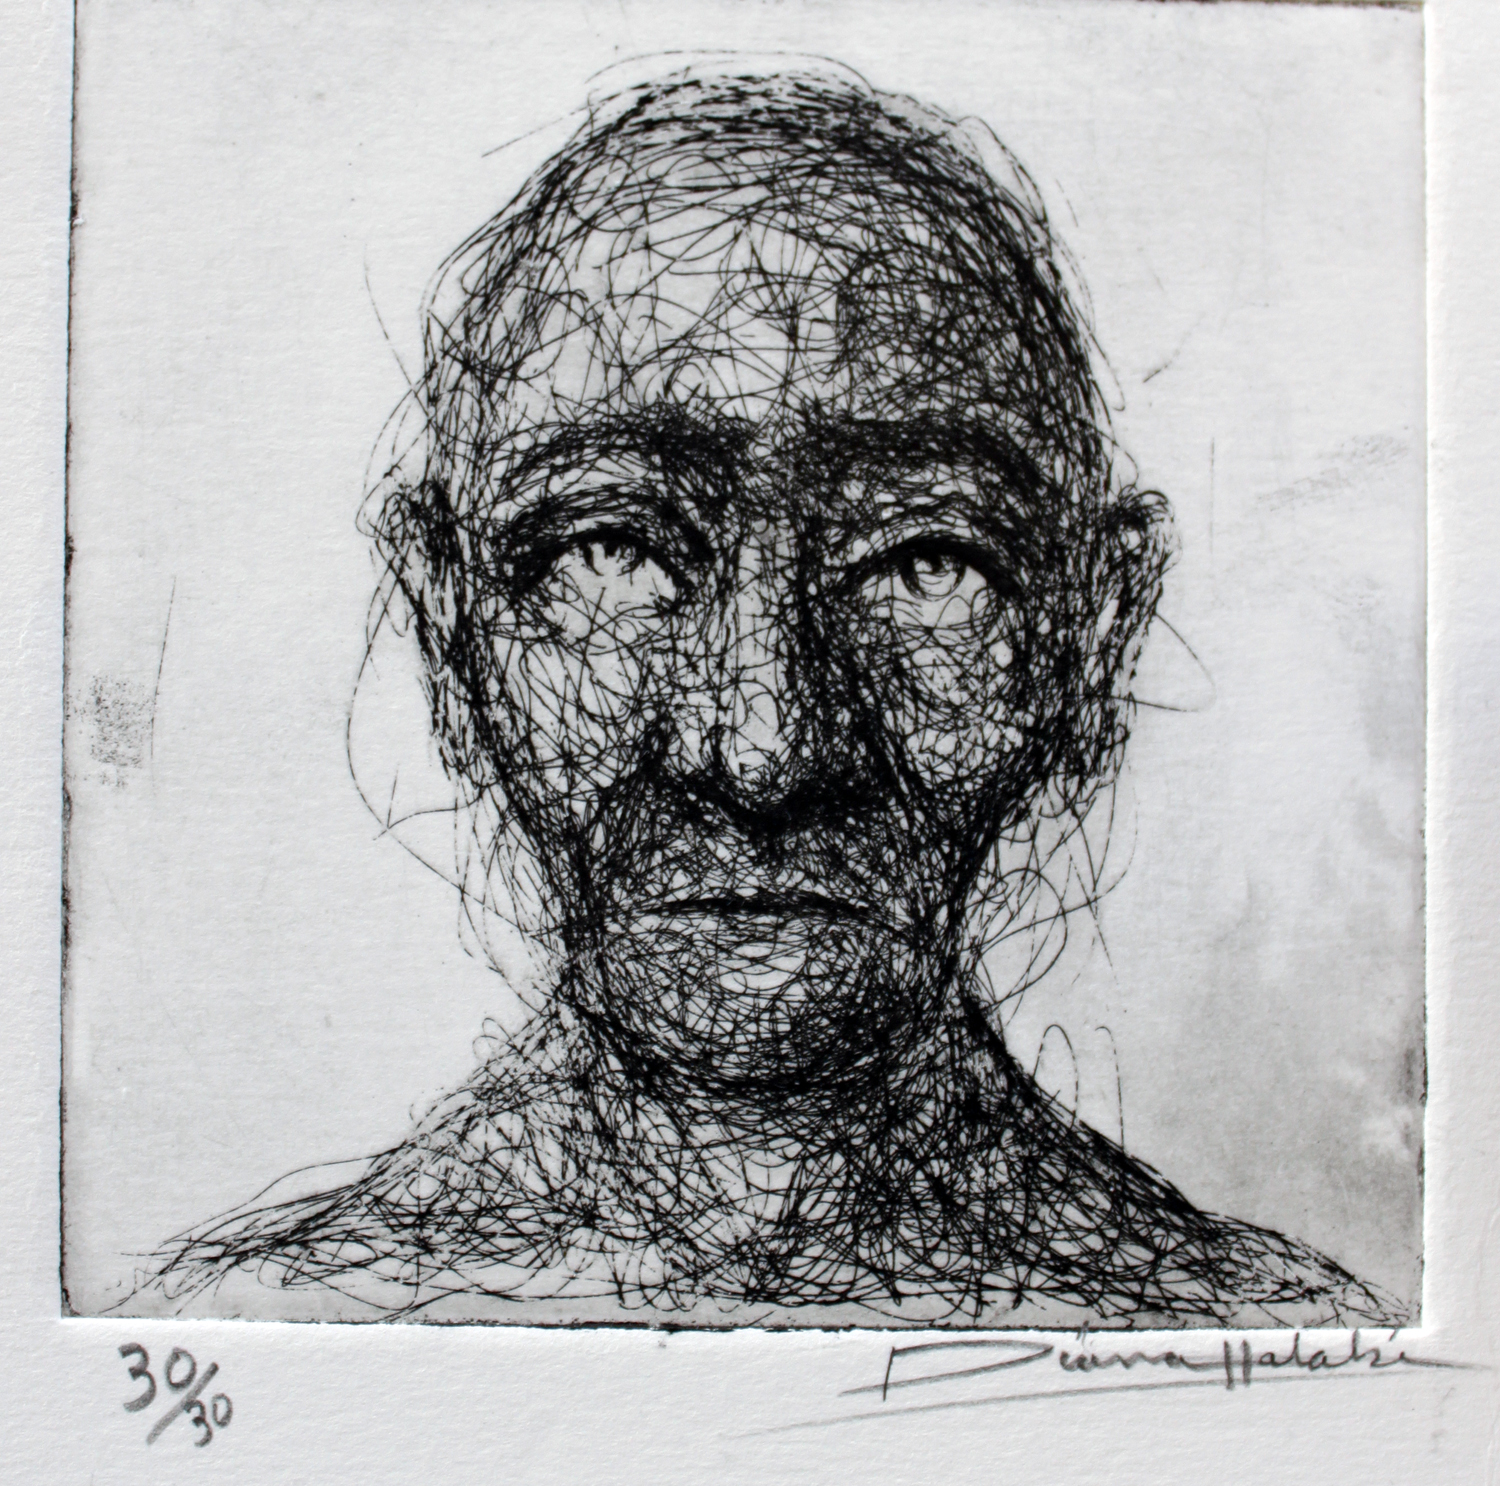 Small portrait etching